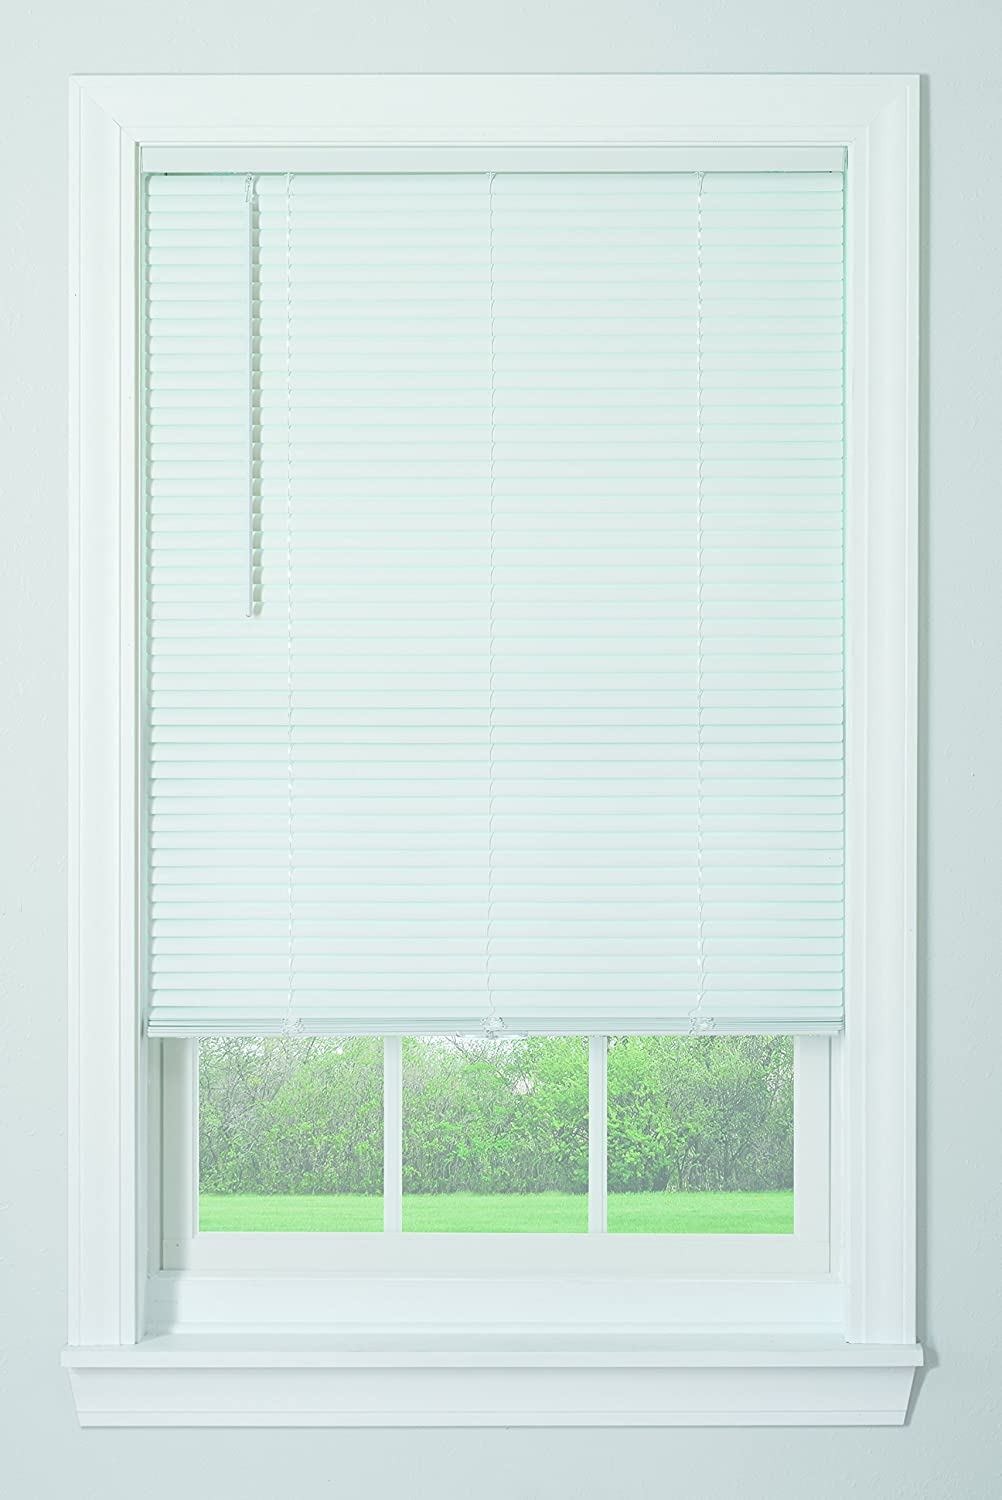 Amazon Com Bali Blinds 1 Vinyl Cordless Blind 36 X 64 White Home Kitchen